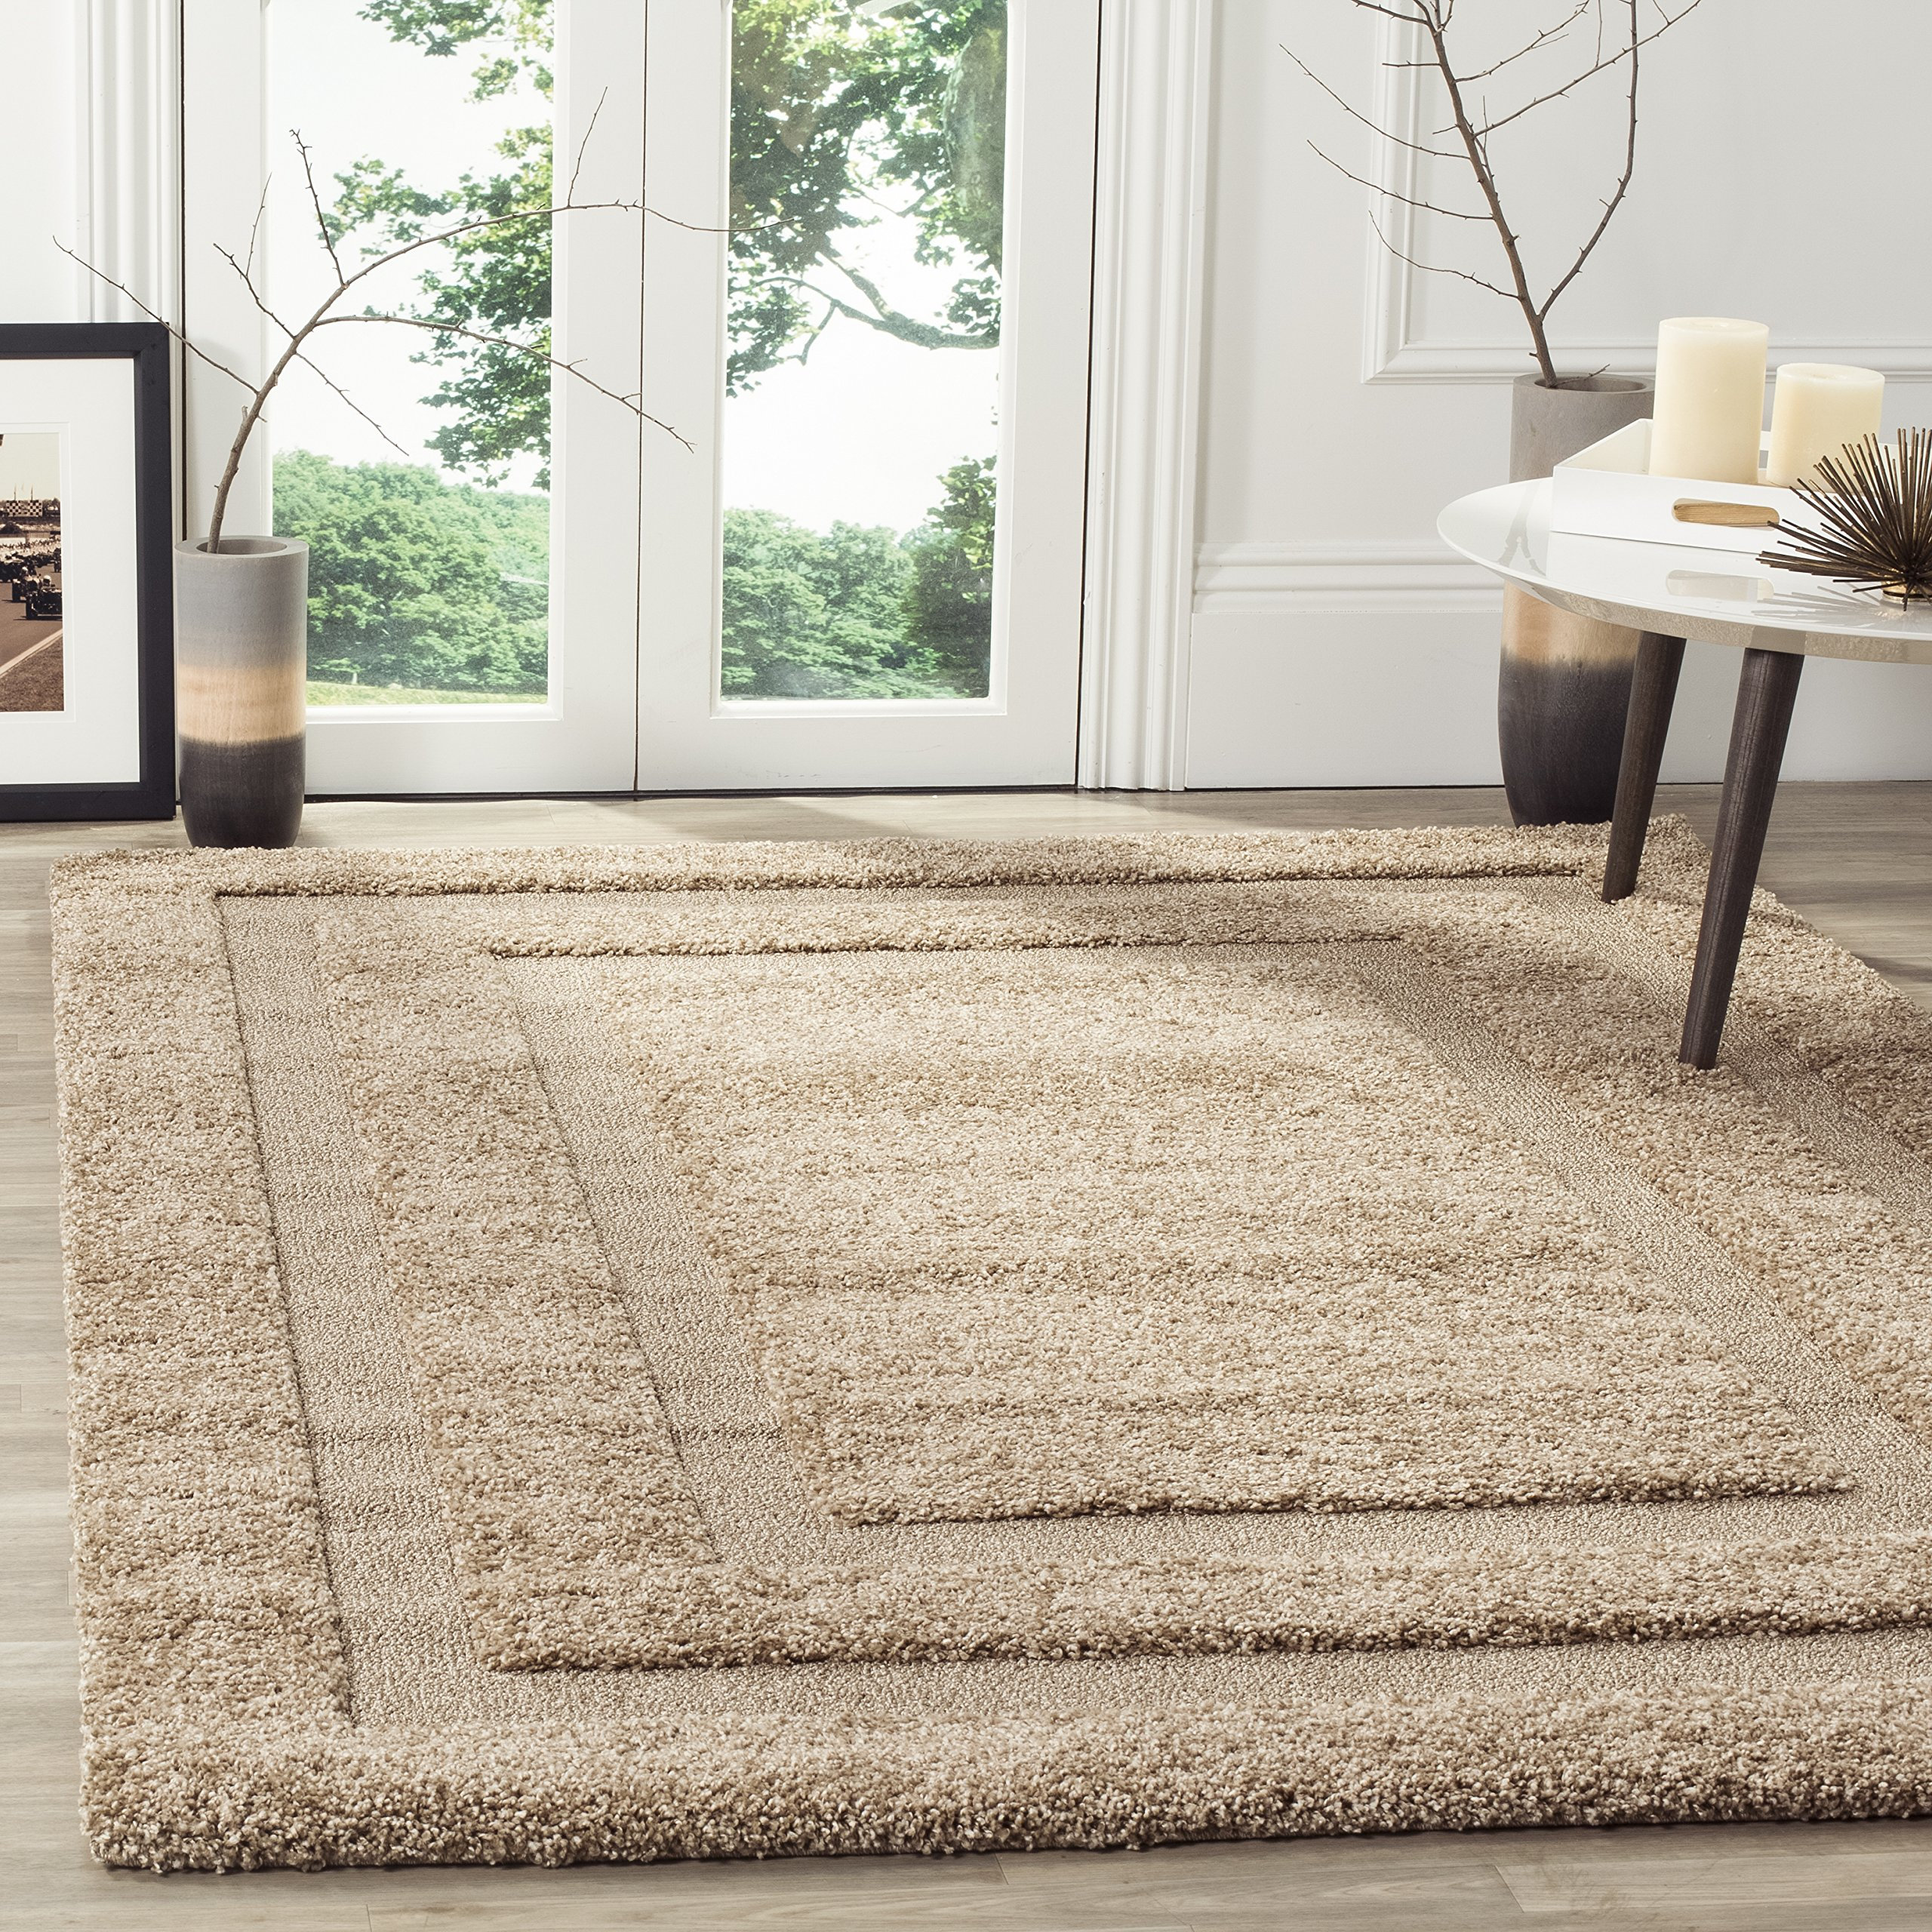 Safavieh Shadow Box Shag Collection SG454-1313 Beige Area Rug (5'3'' x 7'6'') by Safavieh